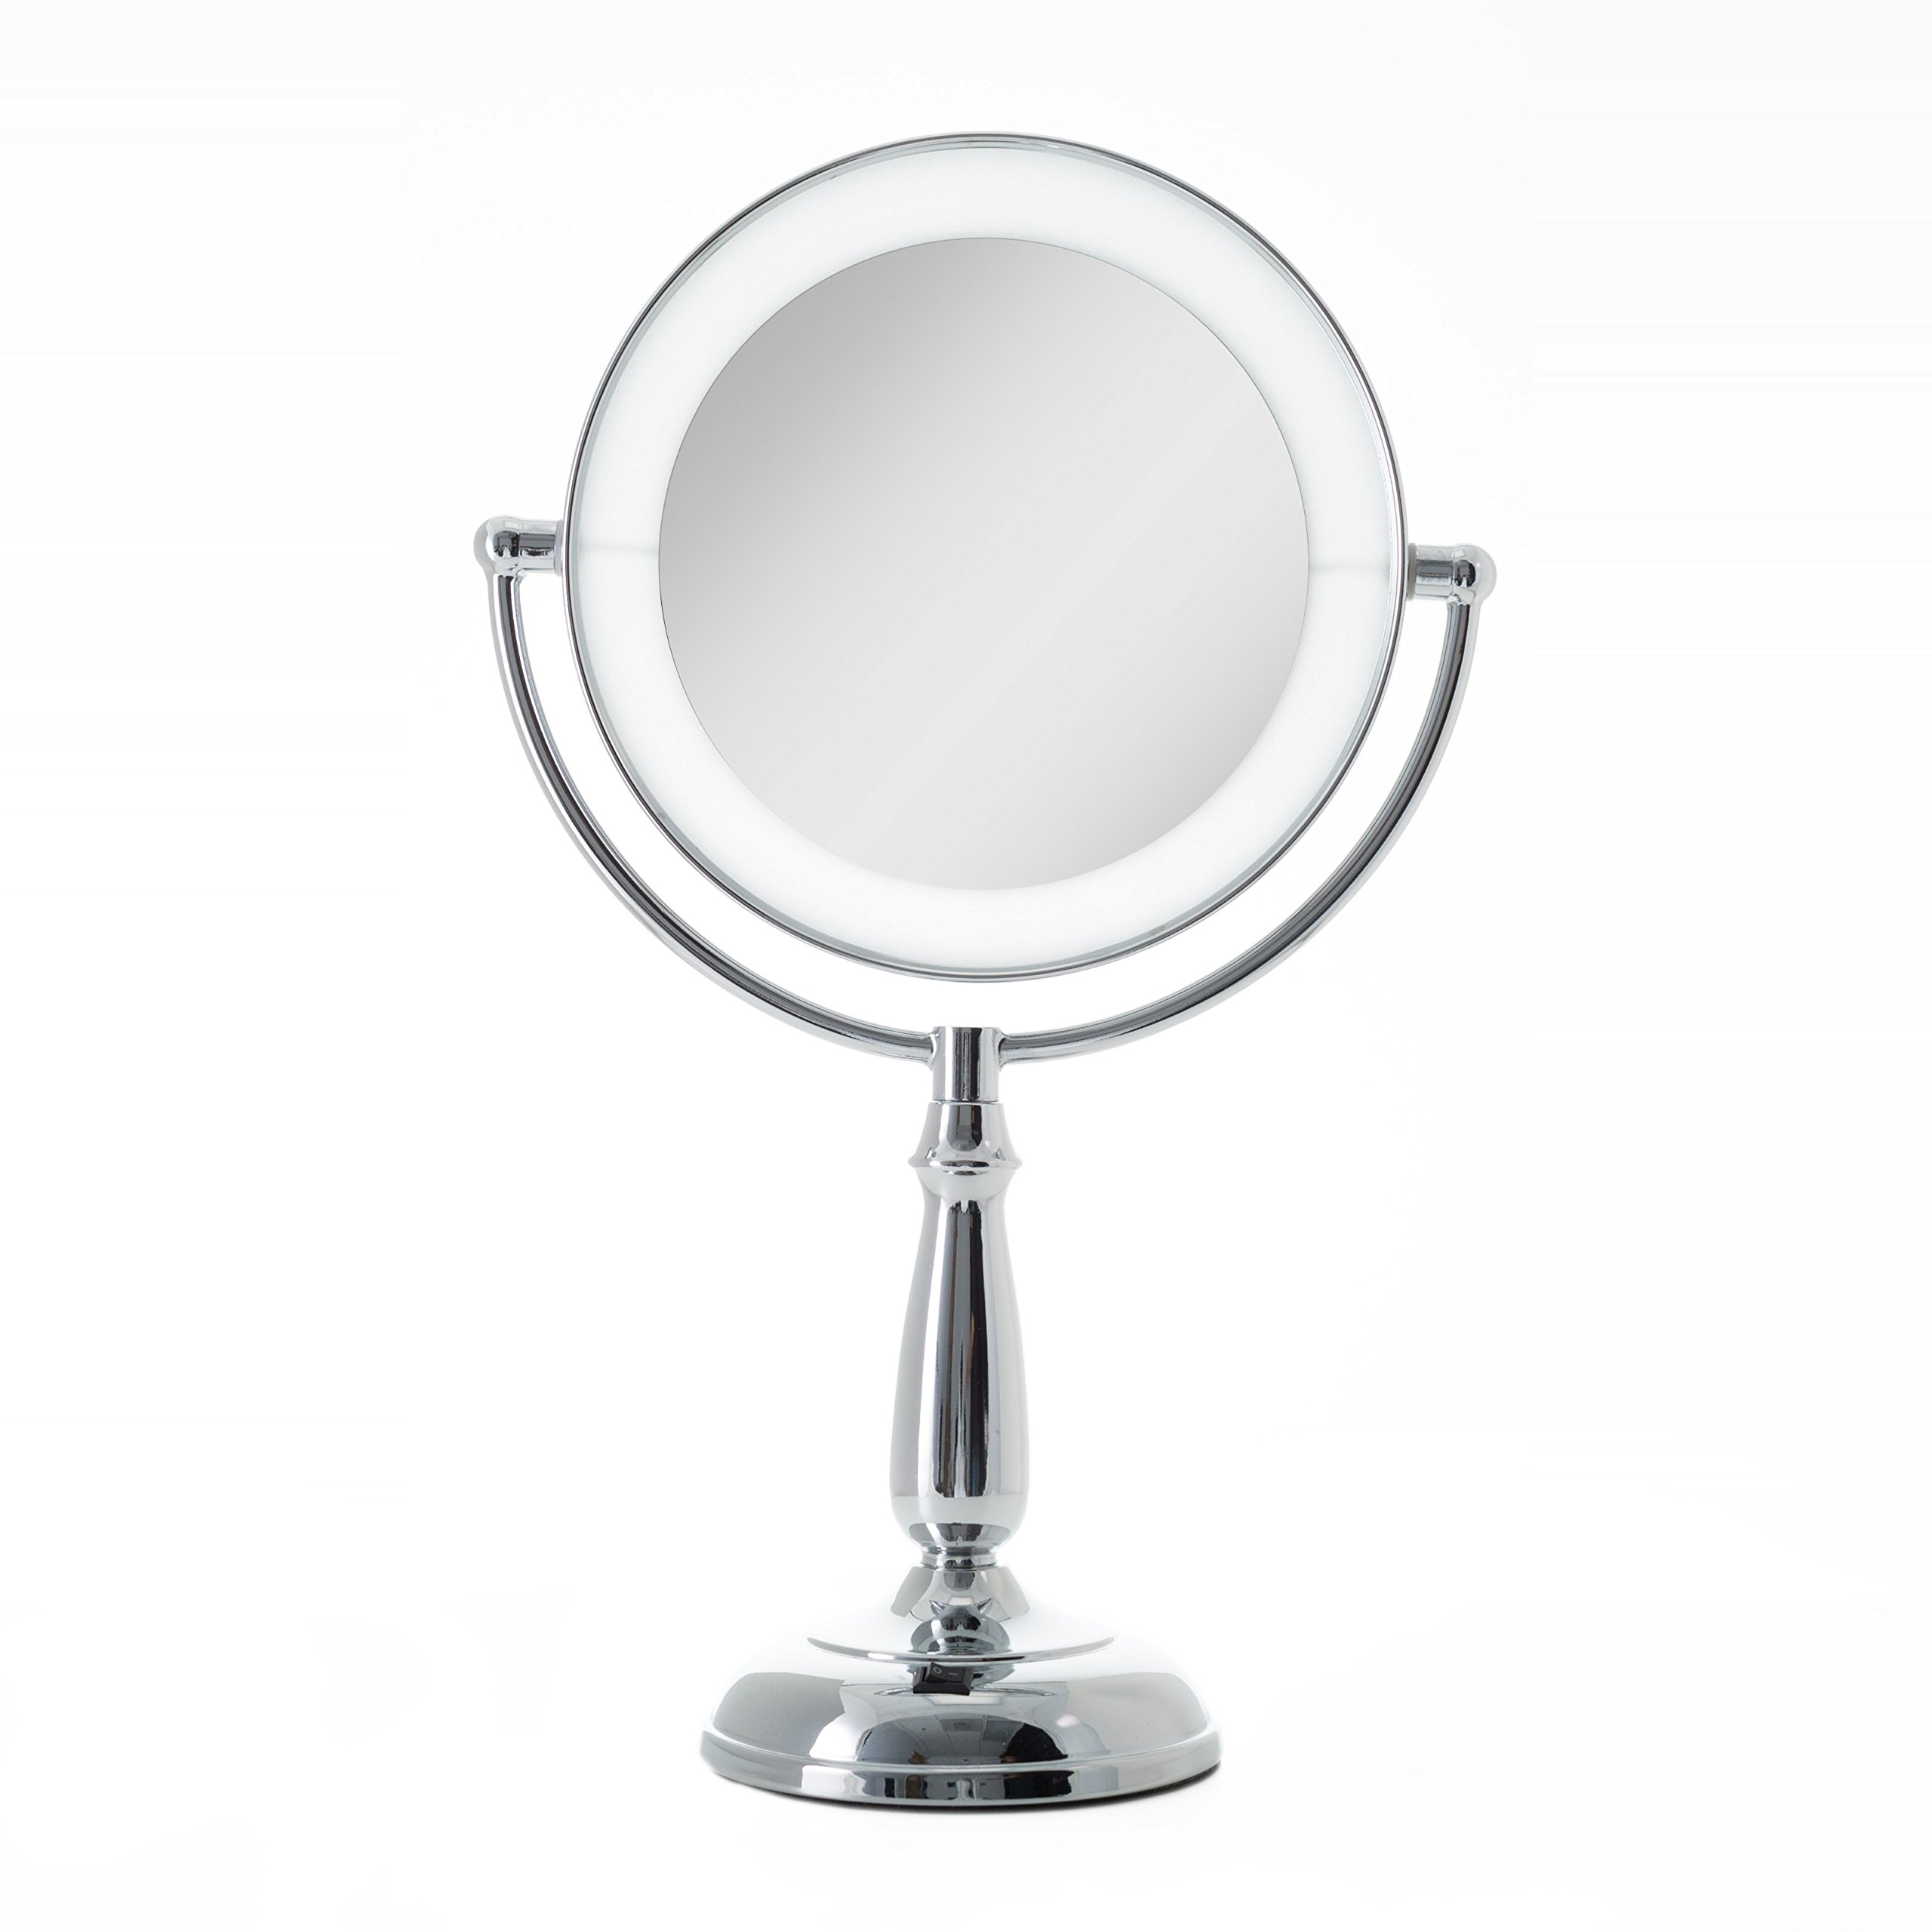 Zadro Dimmable Touch Ultra Bright Dual-Sided LED Lighted Vanity Mirror with 1X & 10X magnification in Chrome Finish.